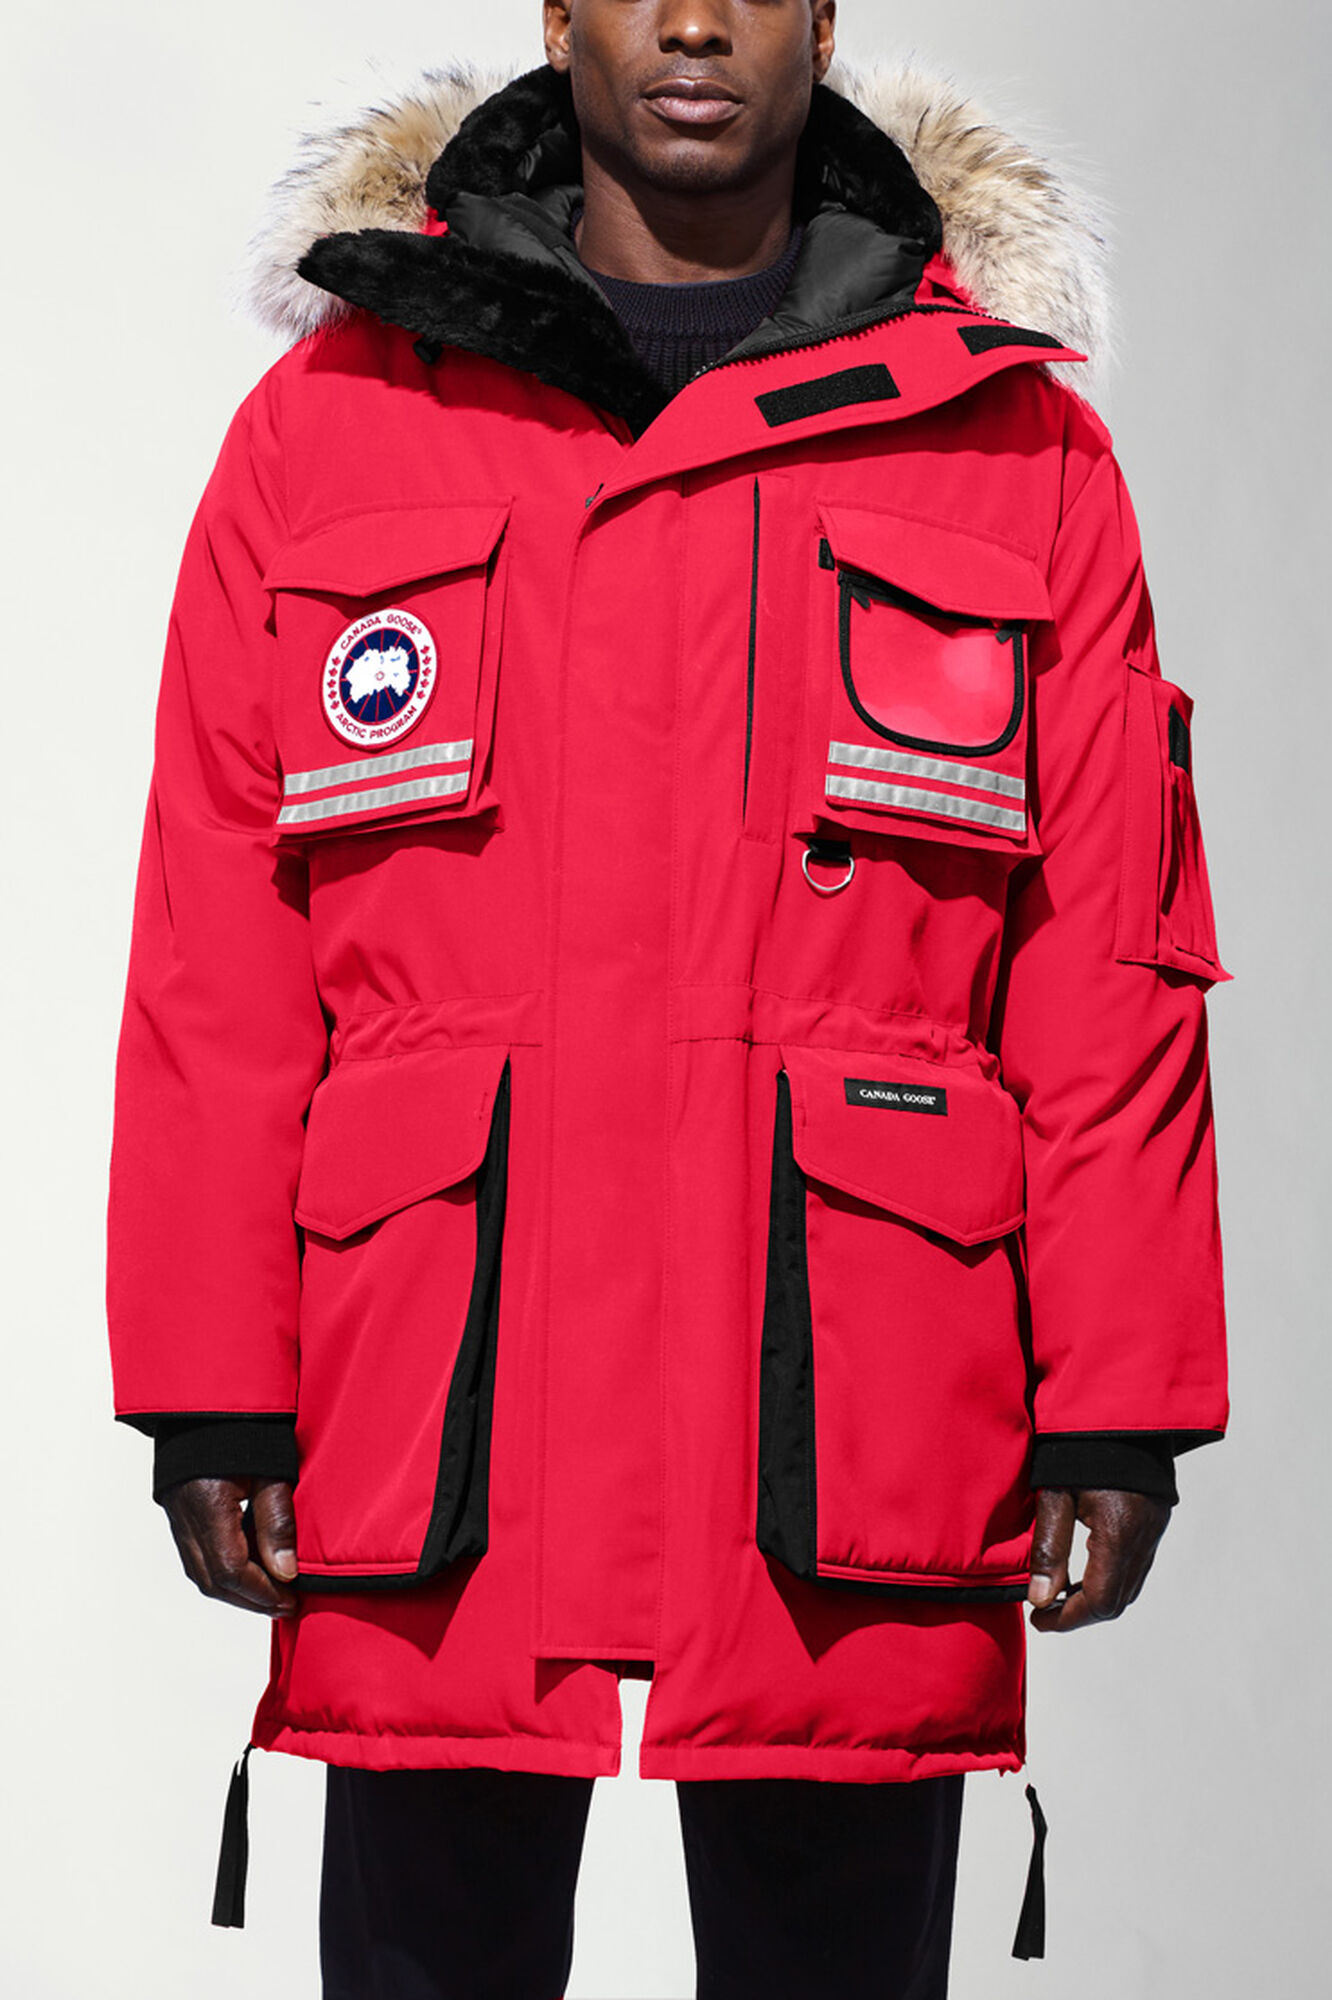 Canada Goose parka sale official - Men's Arctic Program Snow Mantra Parka | Canada Goose?